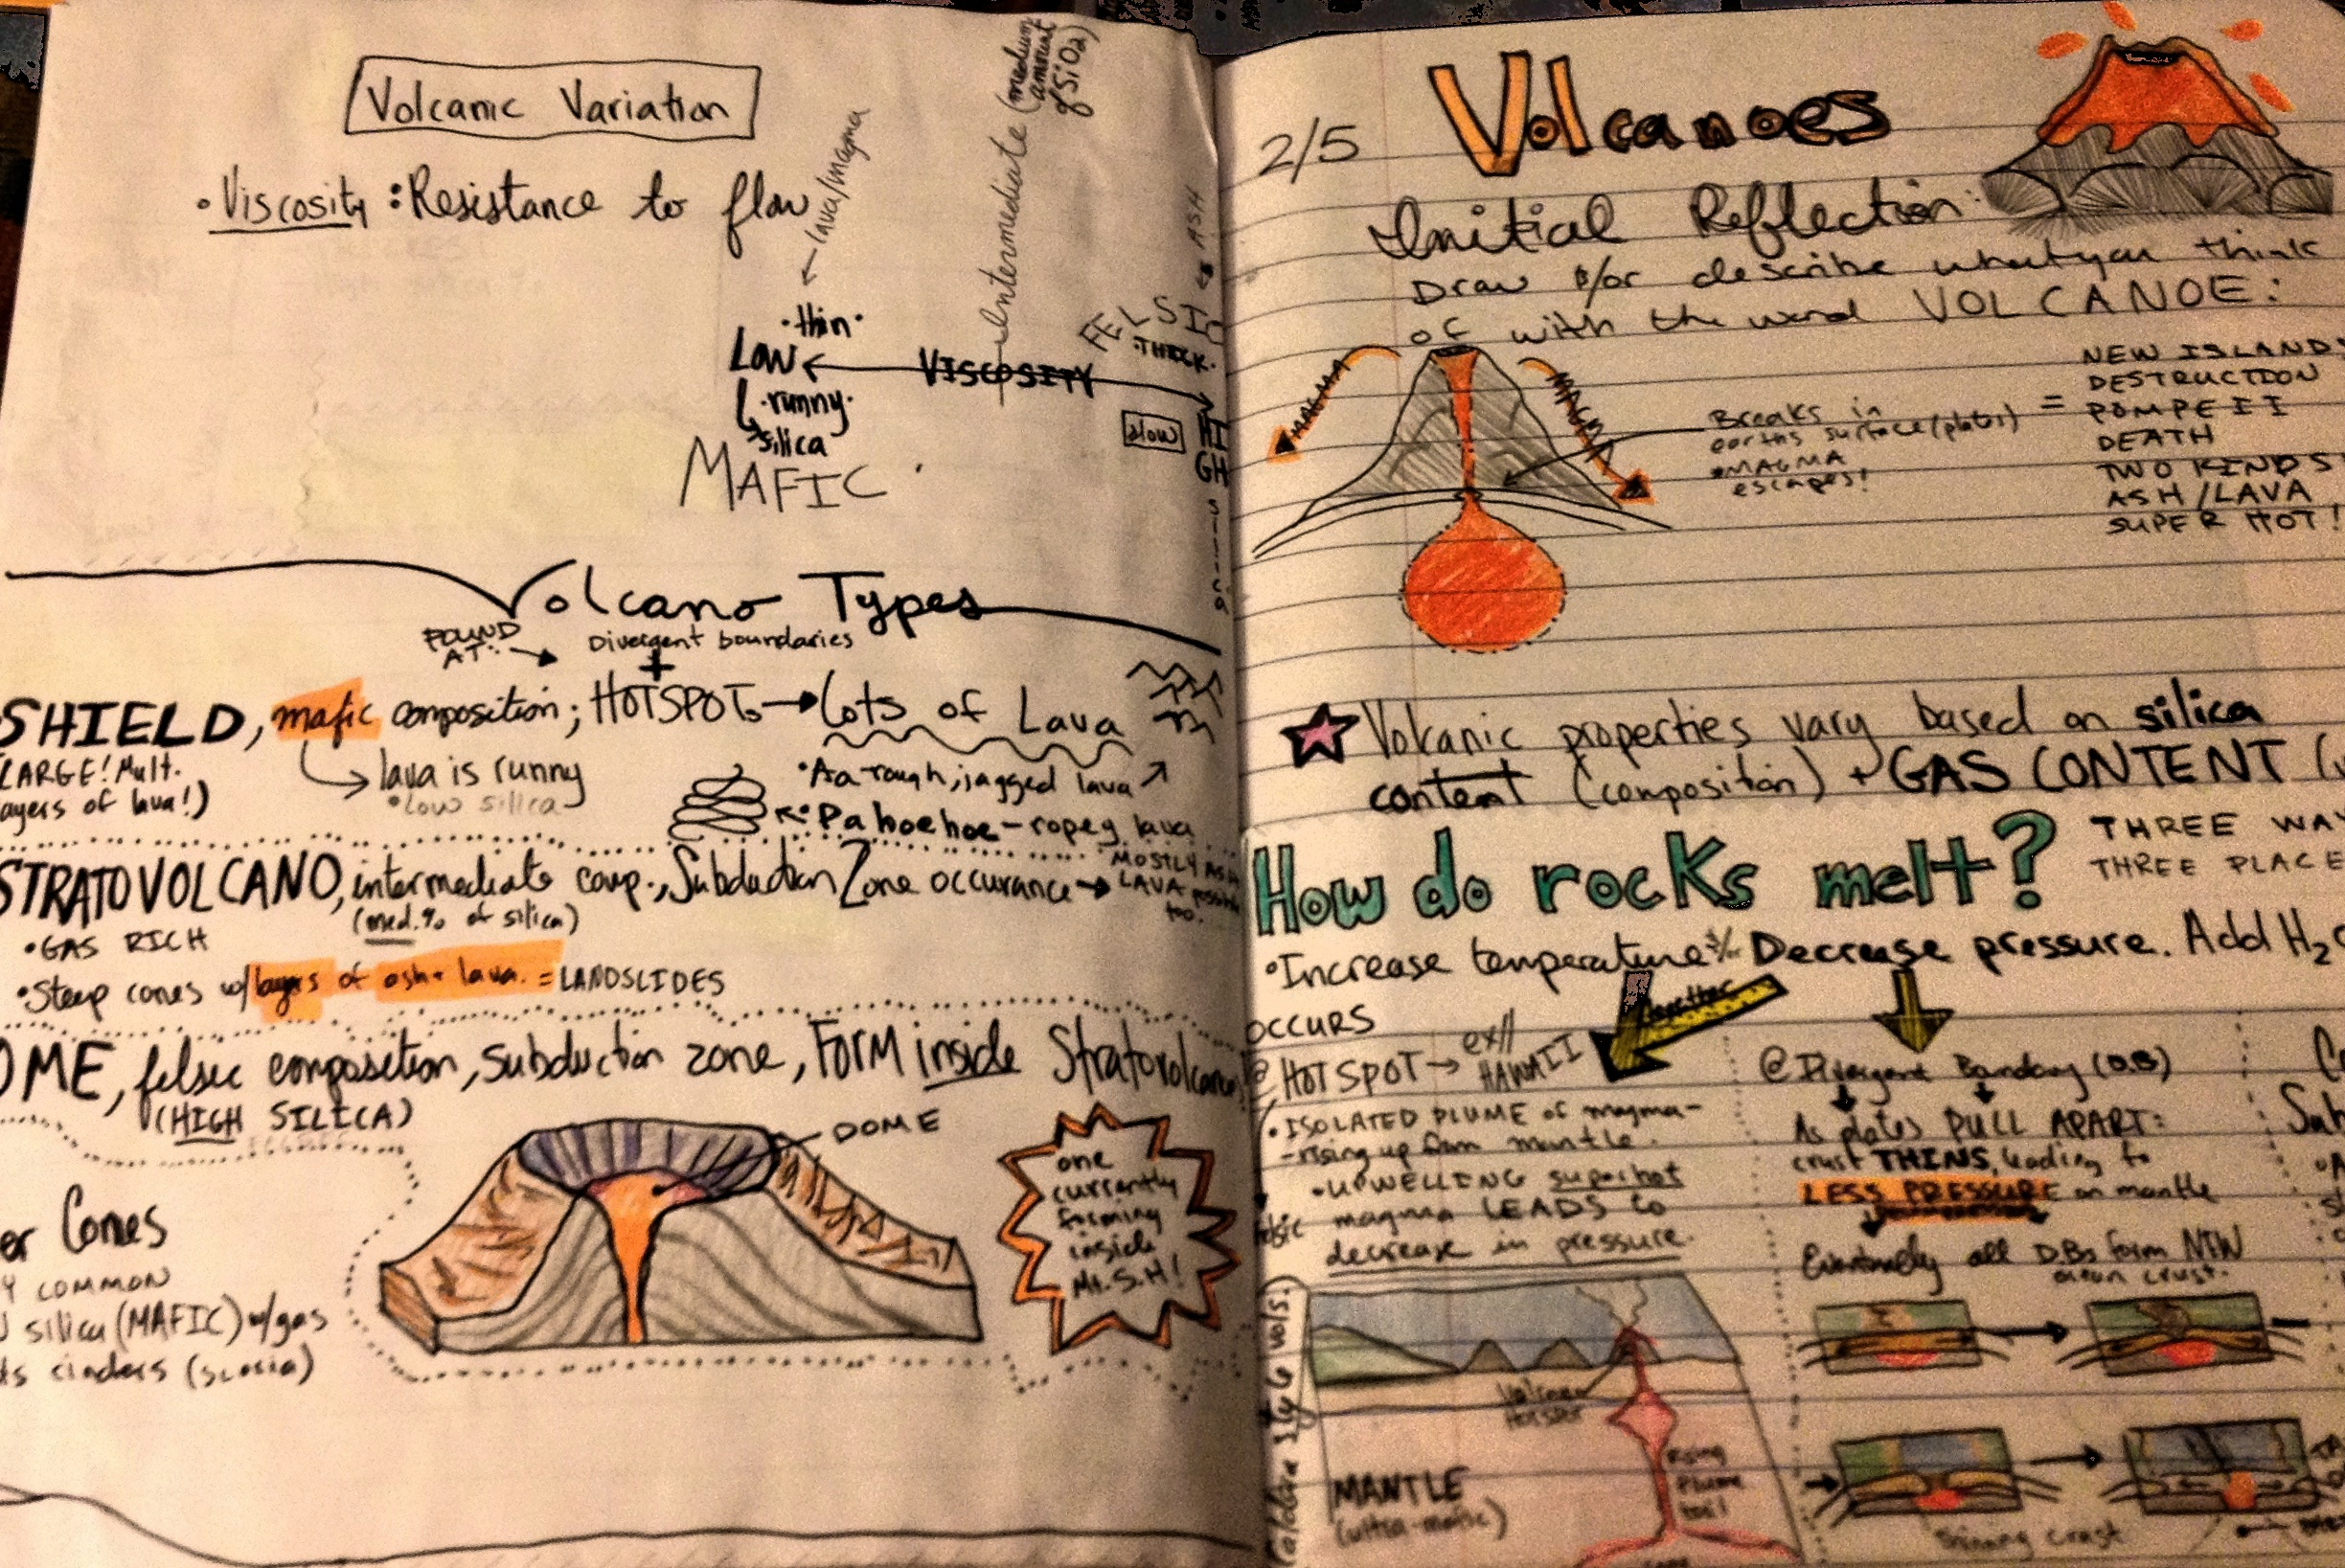 sample page of student notebook sample page of student notebook  View Original Image at Full Size